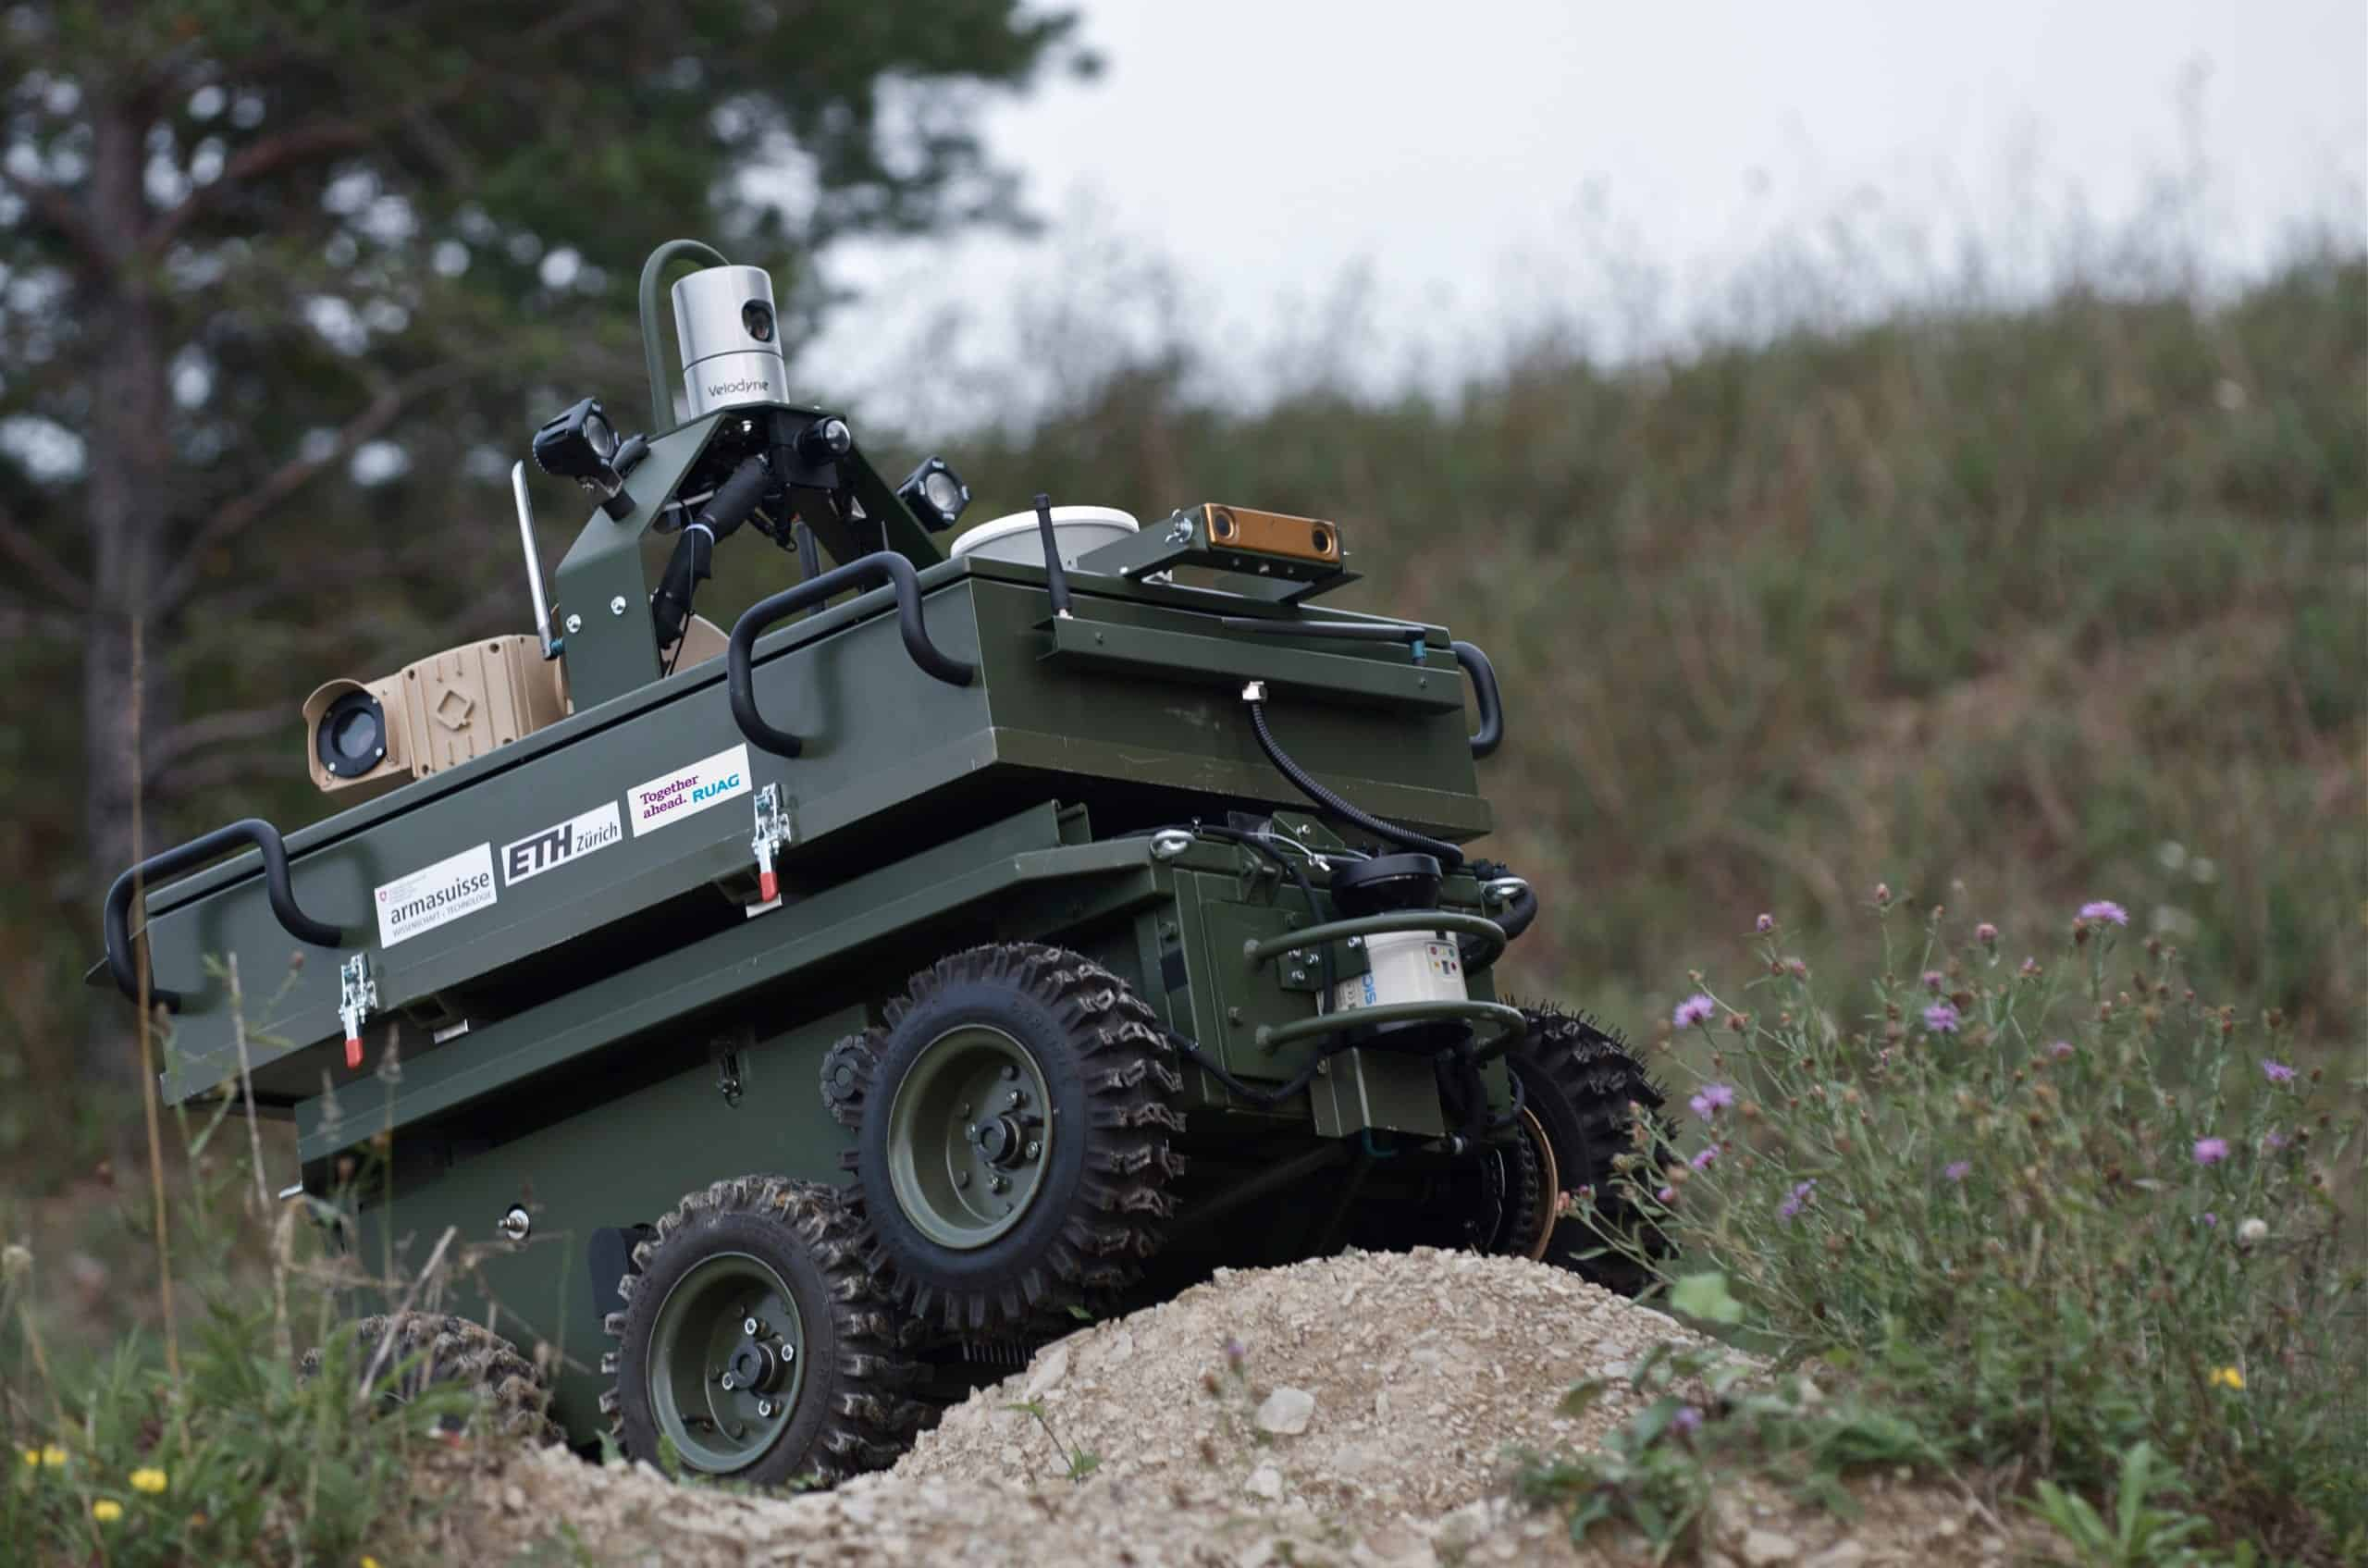 RUAG Presents Two Unmanned Ground Vehicle Projects at M